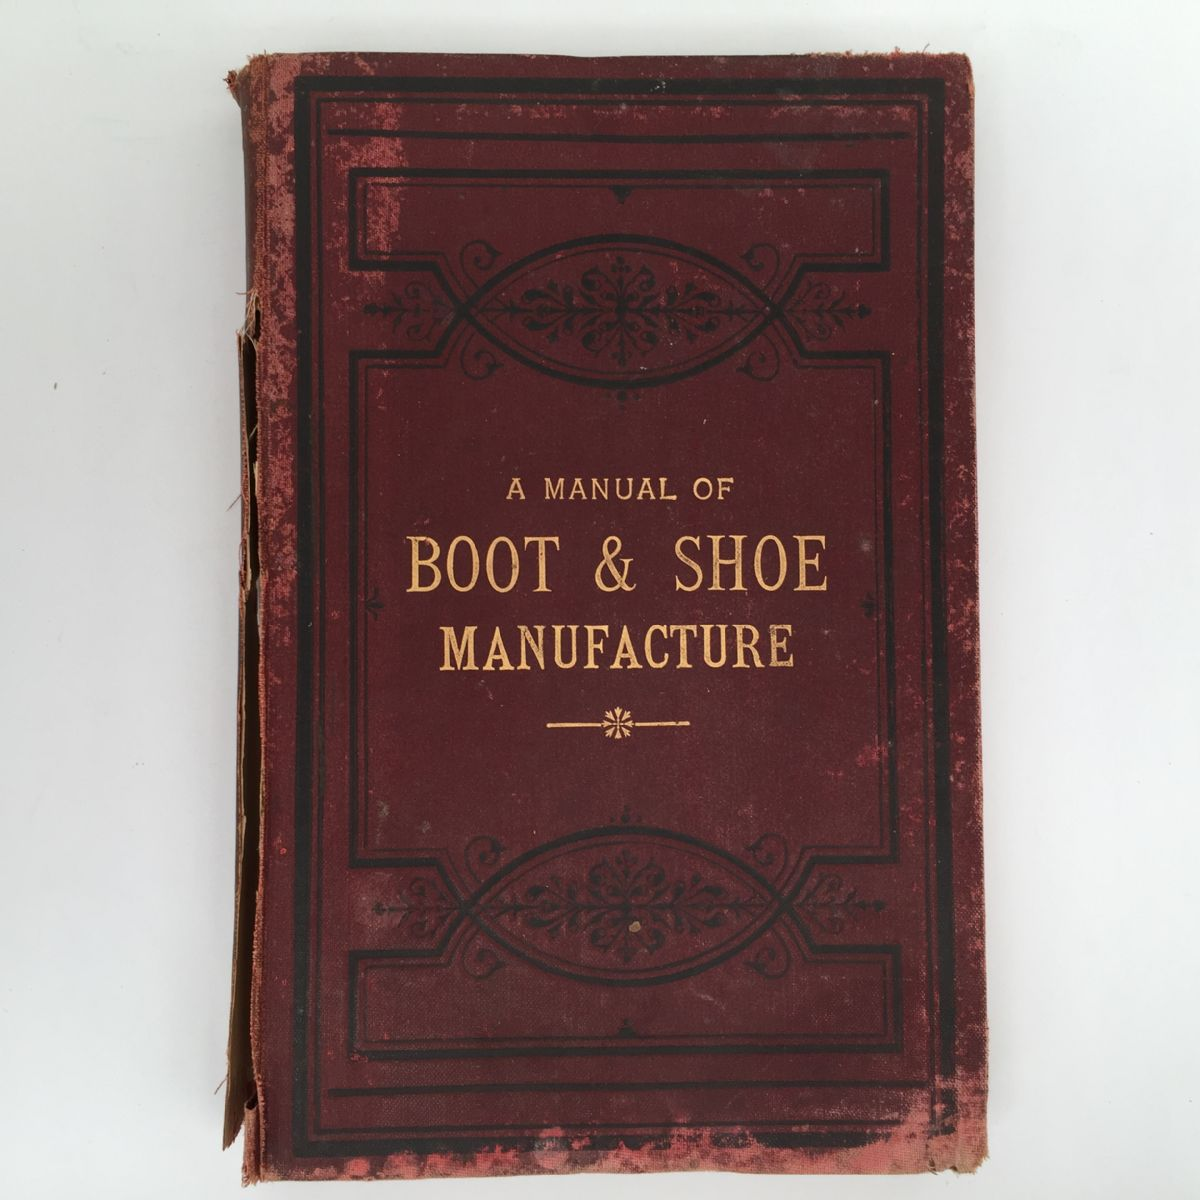 A Manual Of Boot & Shoe Manufacture